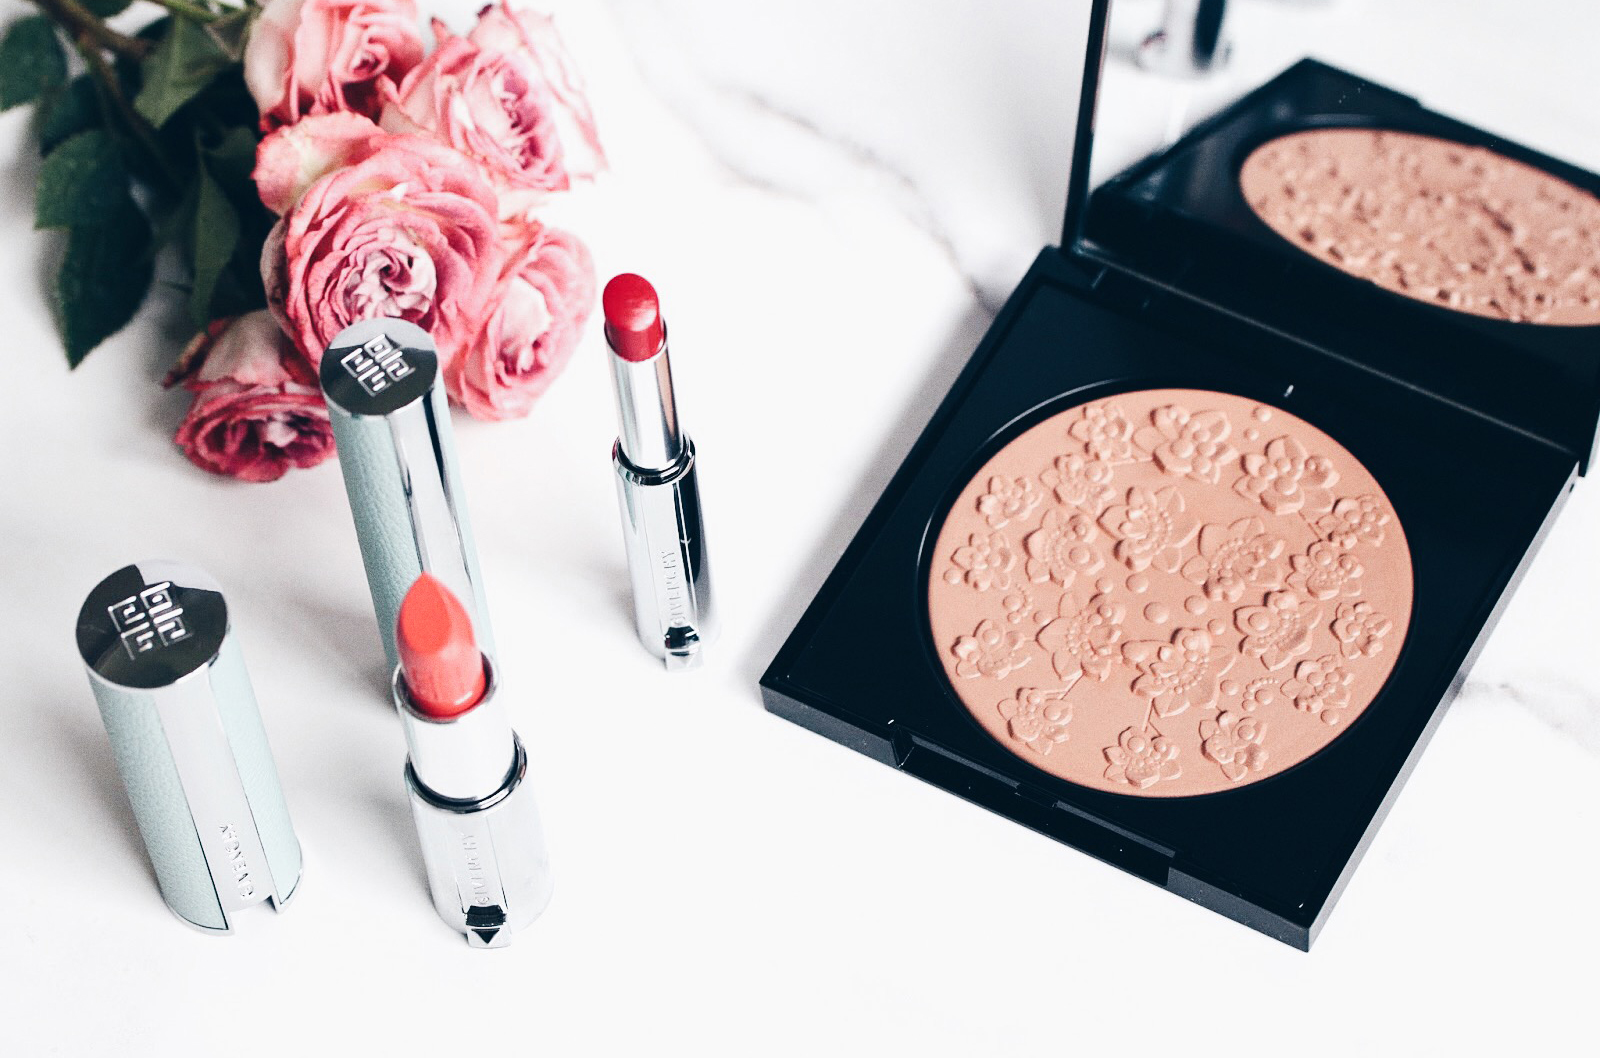 givenchy collection maquillage 2017 322 coral gypsophila 305 red gyspophila avis test swatches